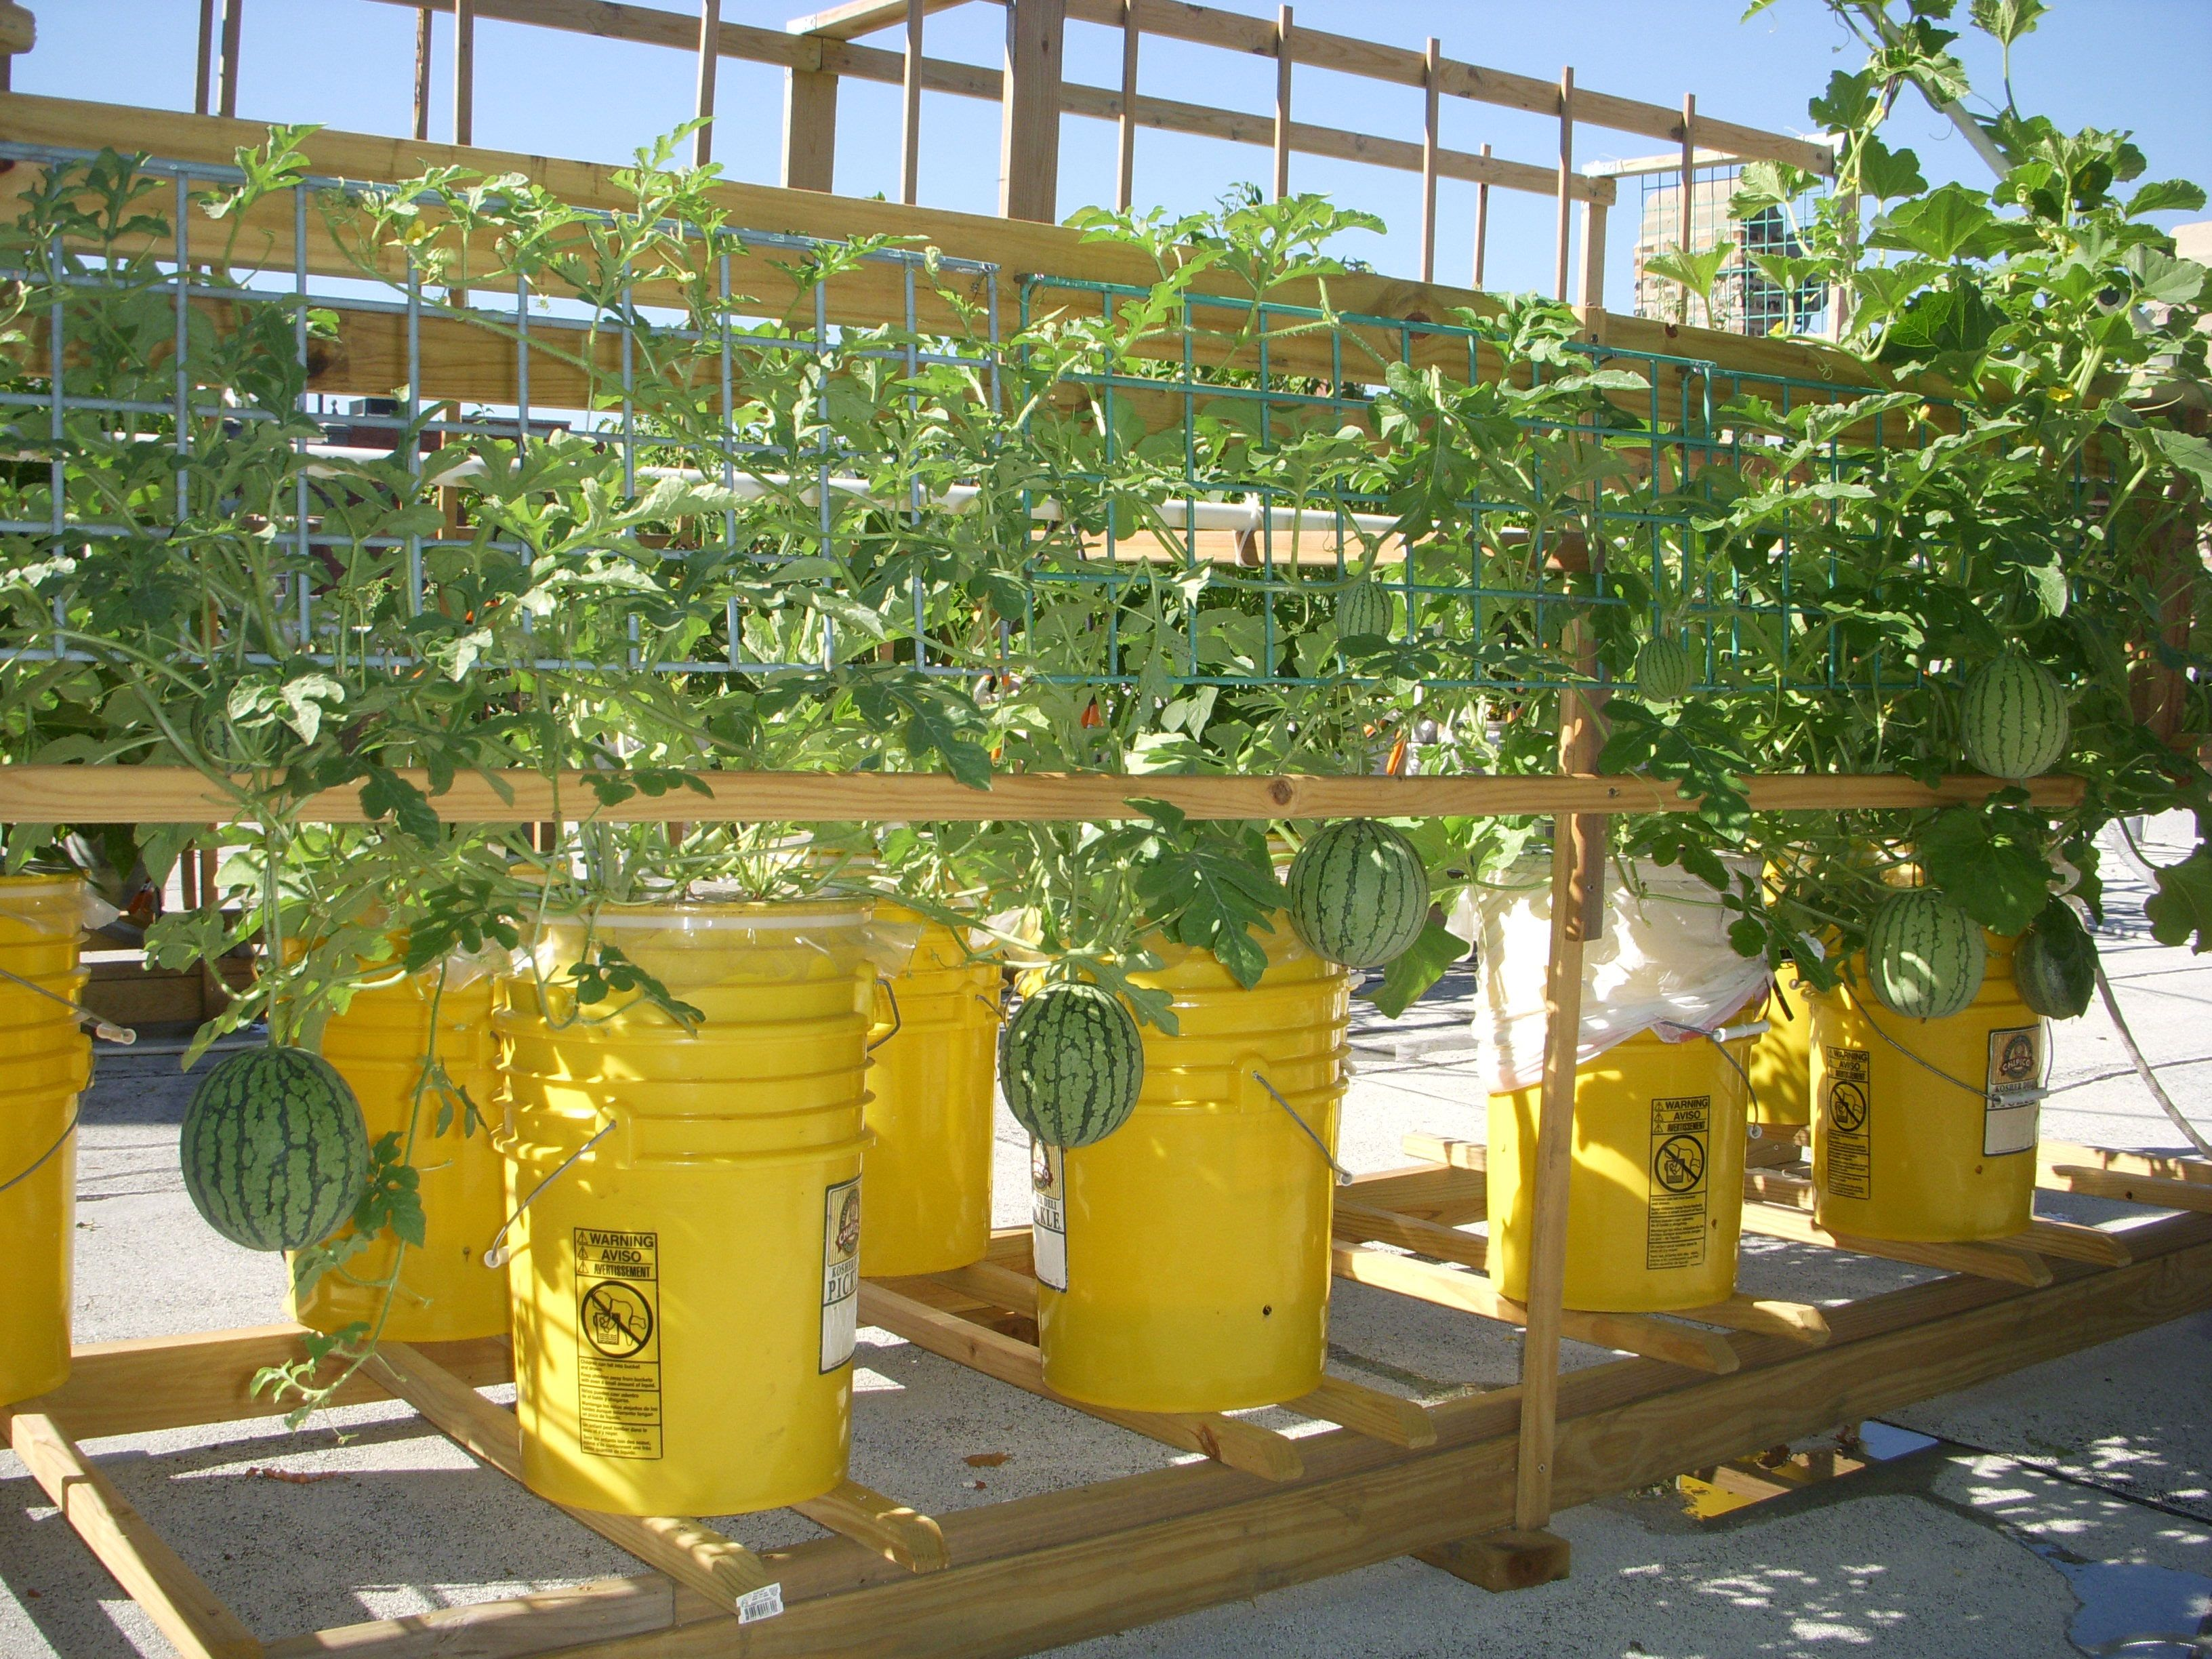 Urban gardening planters - Self Watering Melon Container Oo Kyle Loves Watermelons